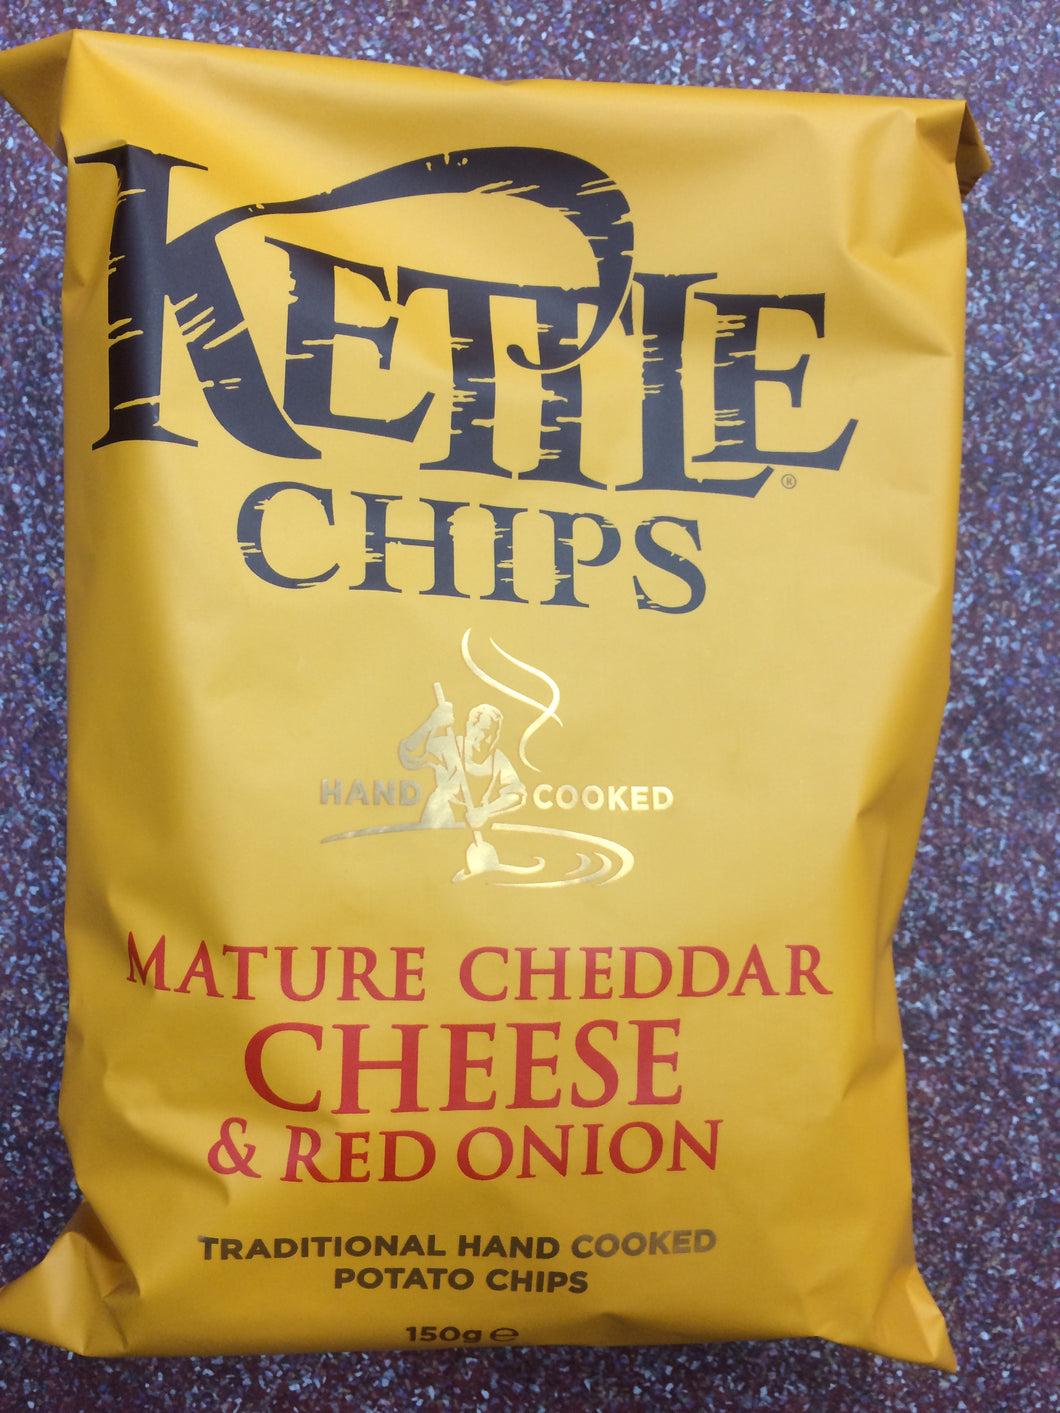 Kettle Chips Mature Cheddar & Red Onion 150g Bag